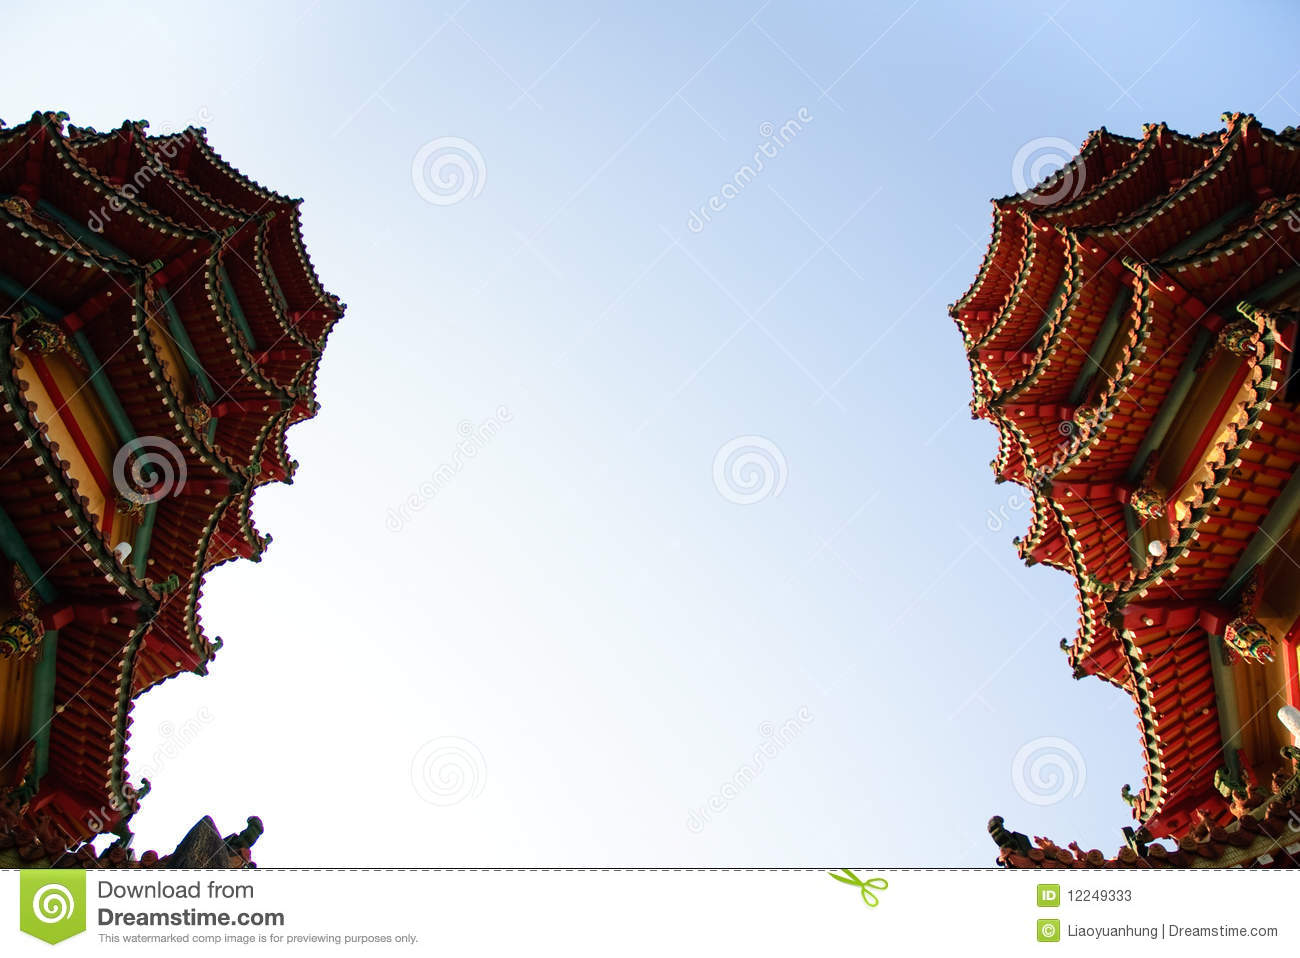 Part of famous dragon and tiger towers in Taiwan